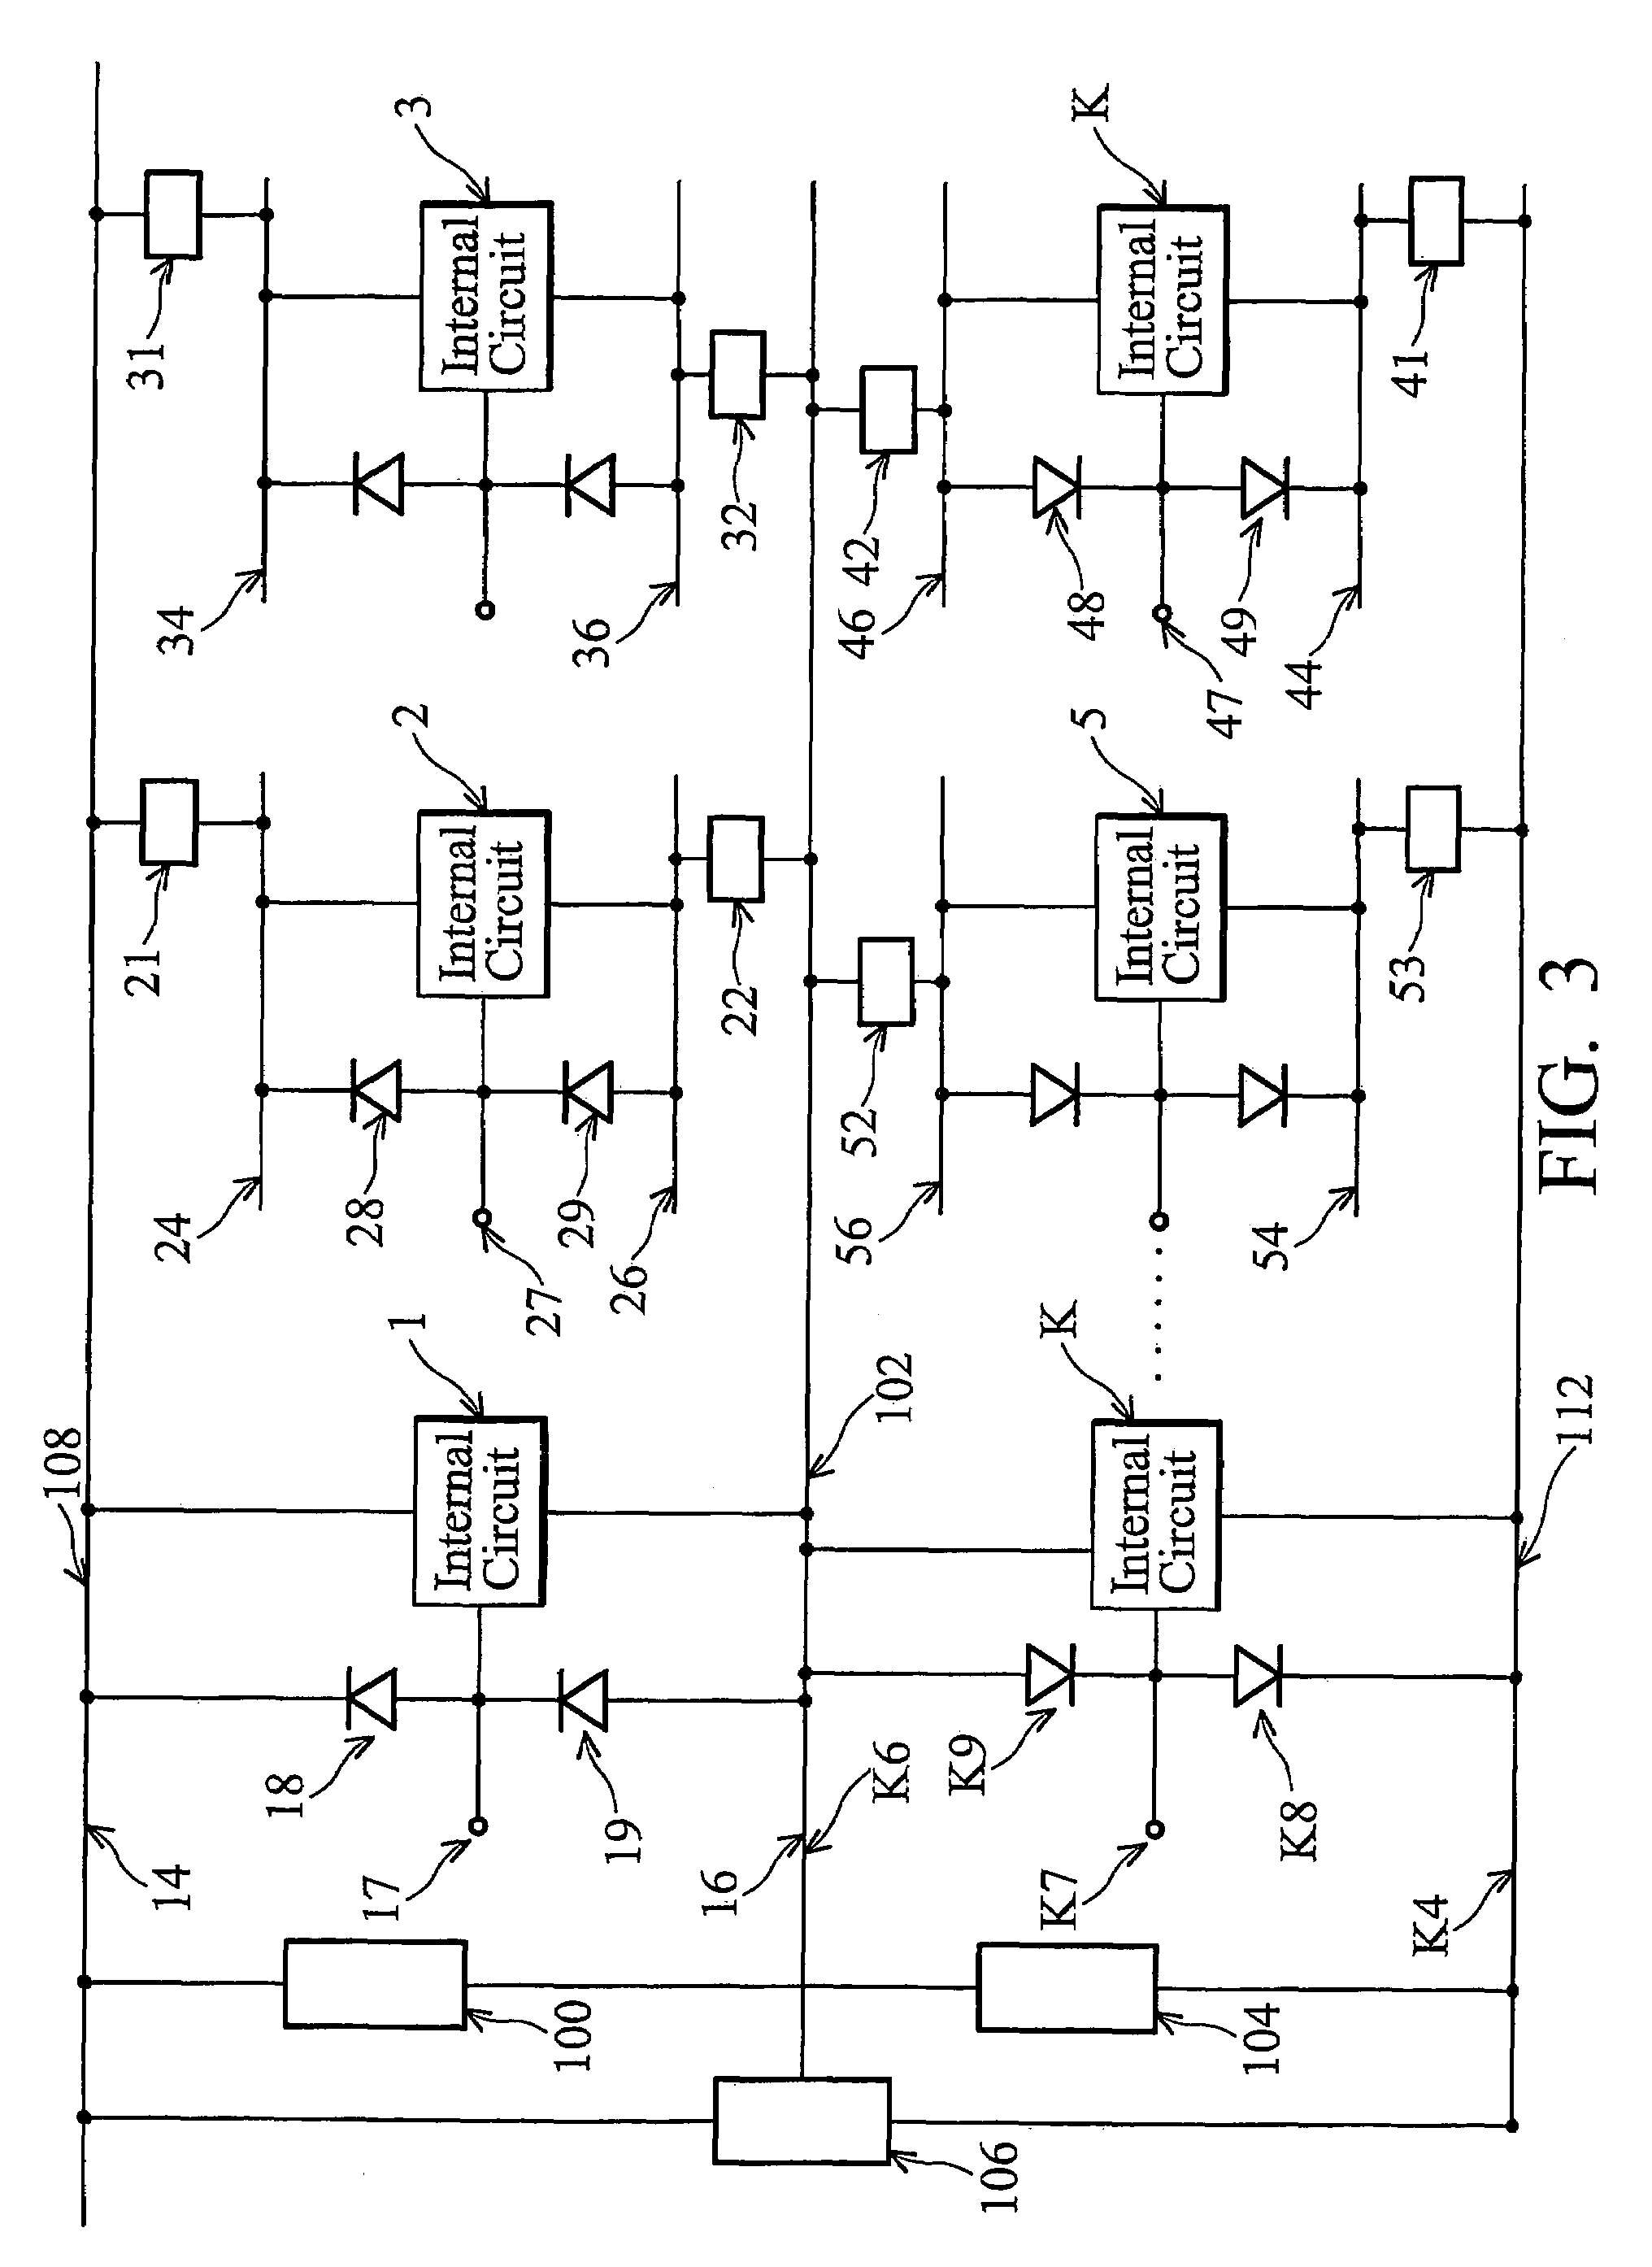 Ic Internal Schematic Diagram Wiring Database Theremin Measuringandtestcircuit Circuit Seekiccom Patent Us7411767 Multi Domain Esd Protection Structure Gc